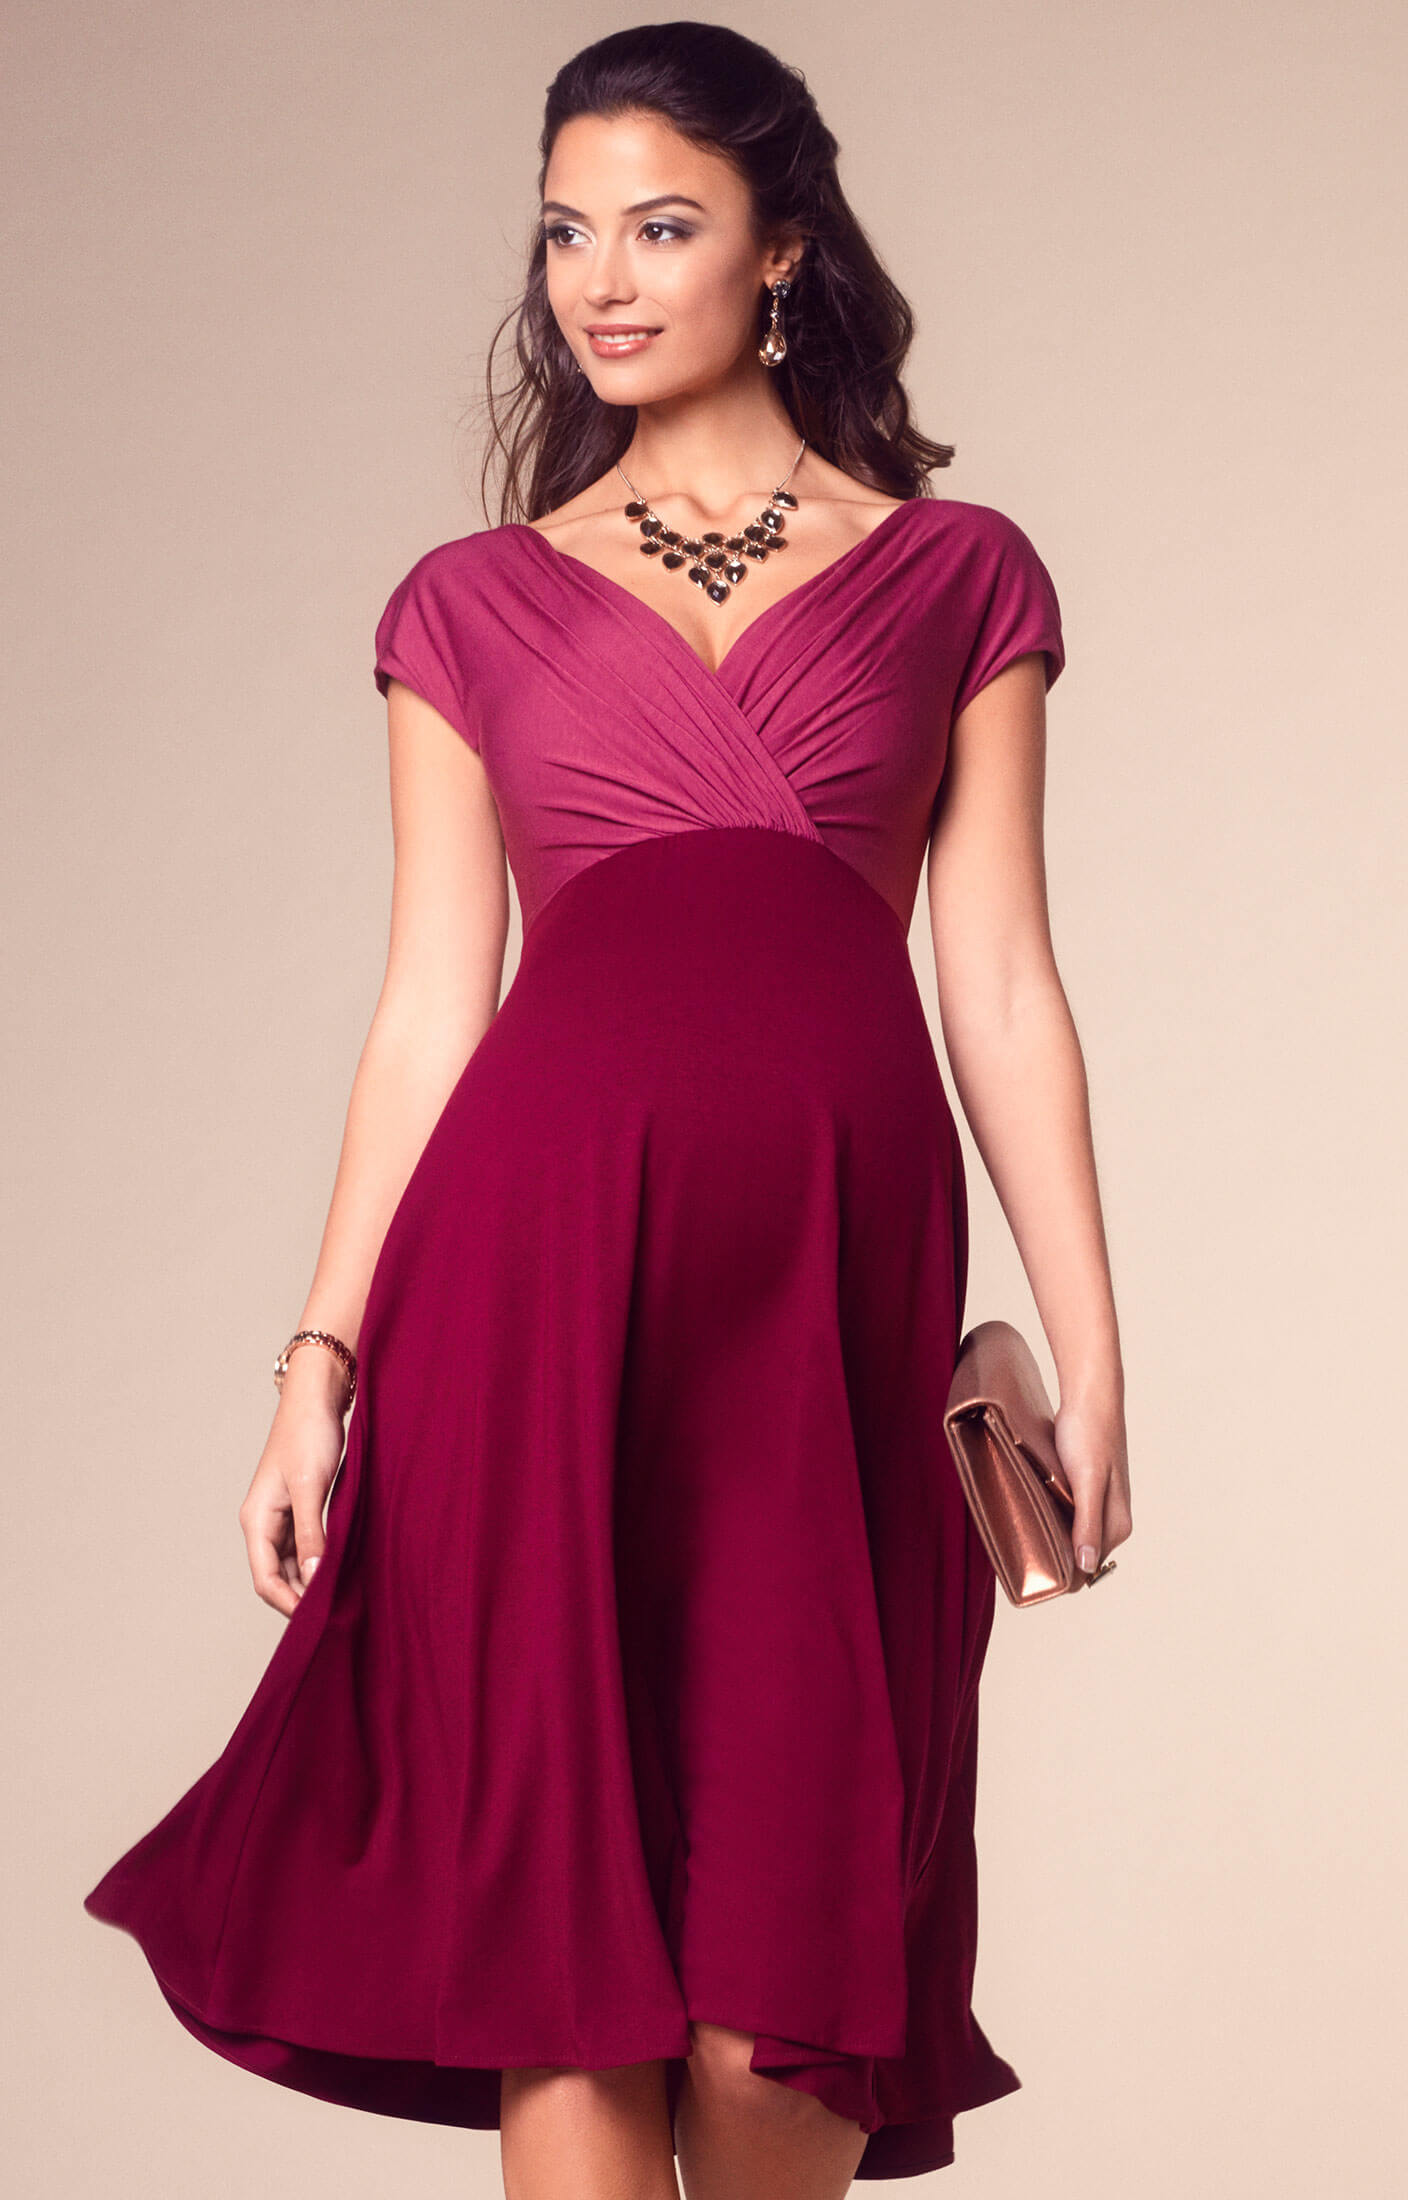 Alessandra maternity dress short rosey red maternity for How to dress for an evening wedding